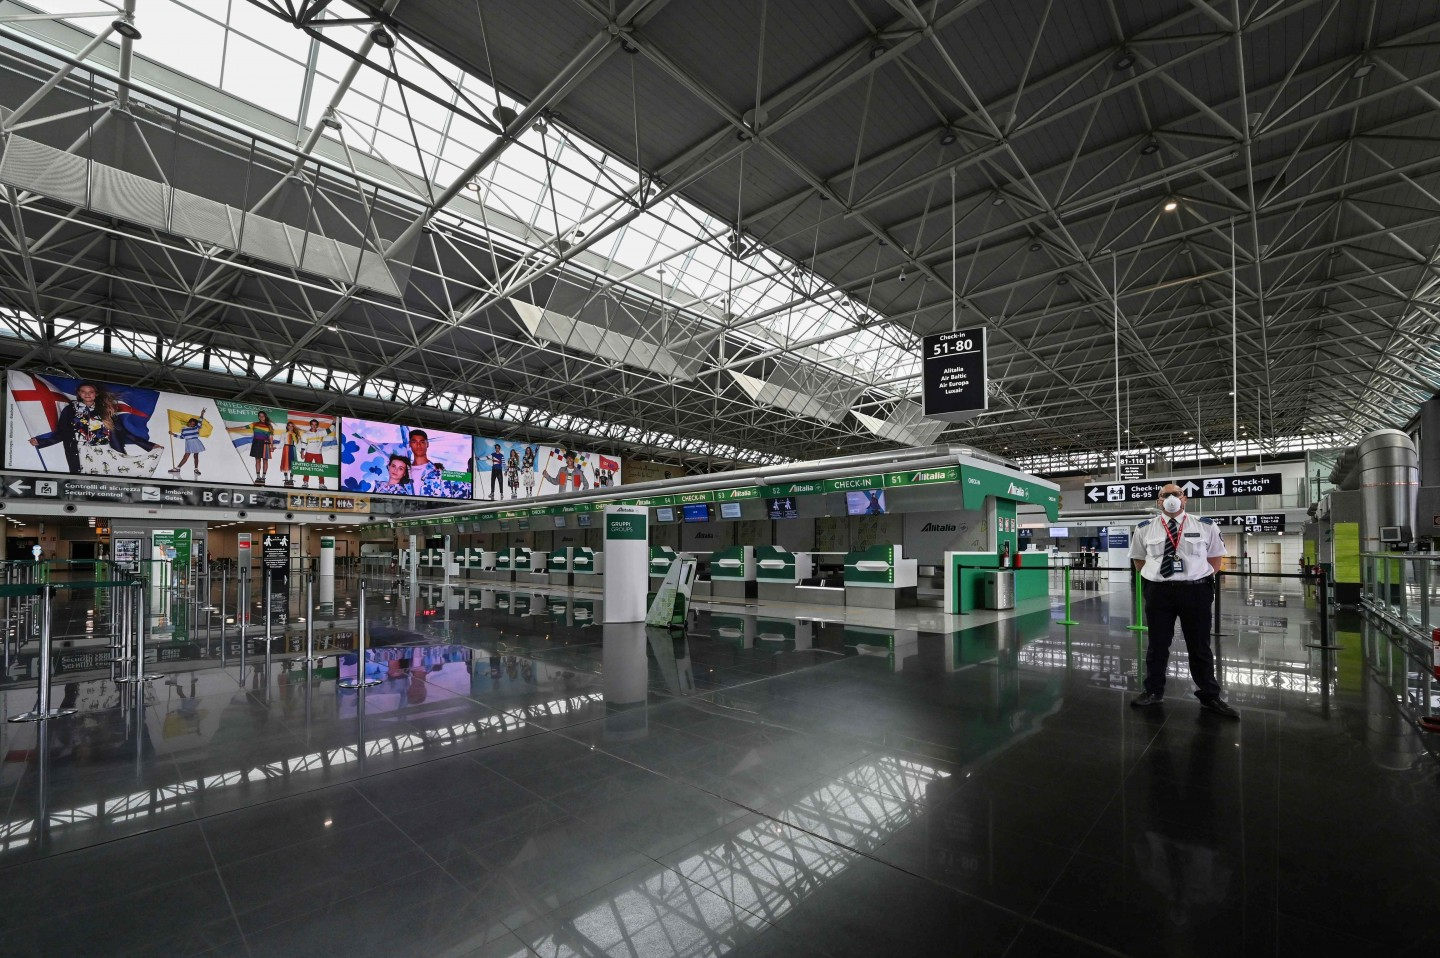 An airport security agent stands guard in a deserted Terminal T1 of Rome's Fiumicino international airport on 17 March 2020. (Andreas Solaro/AFP)